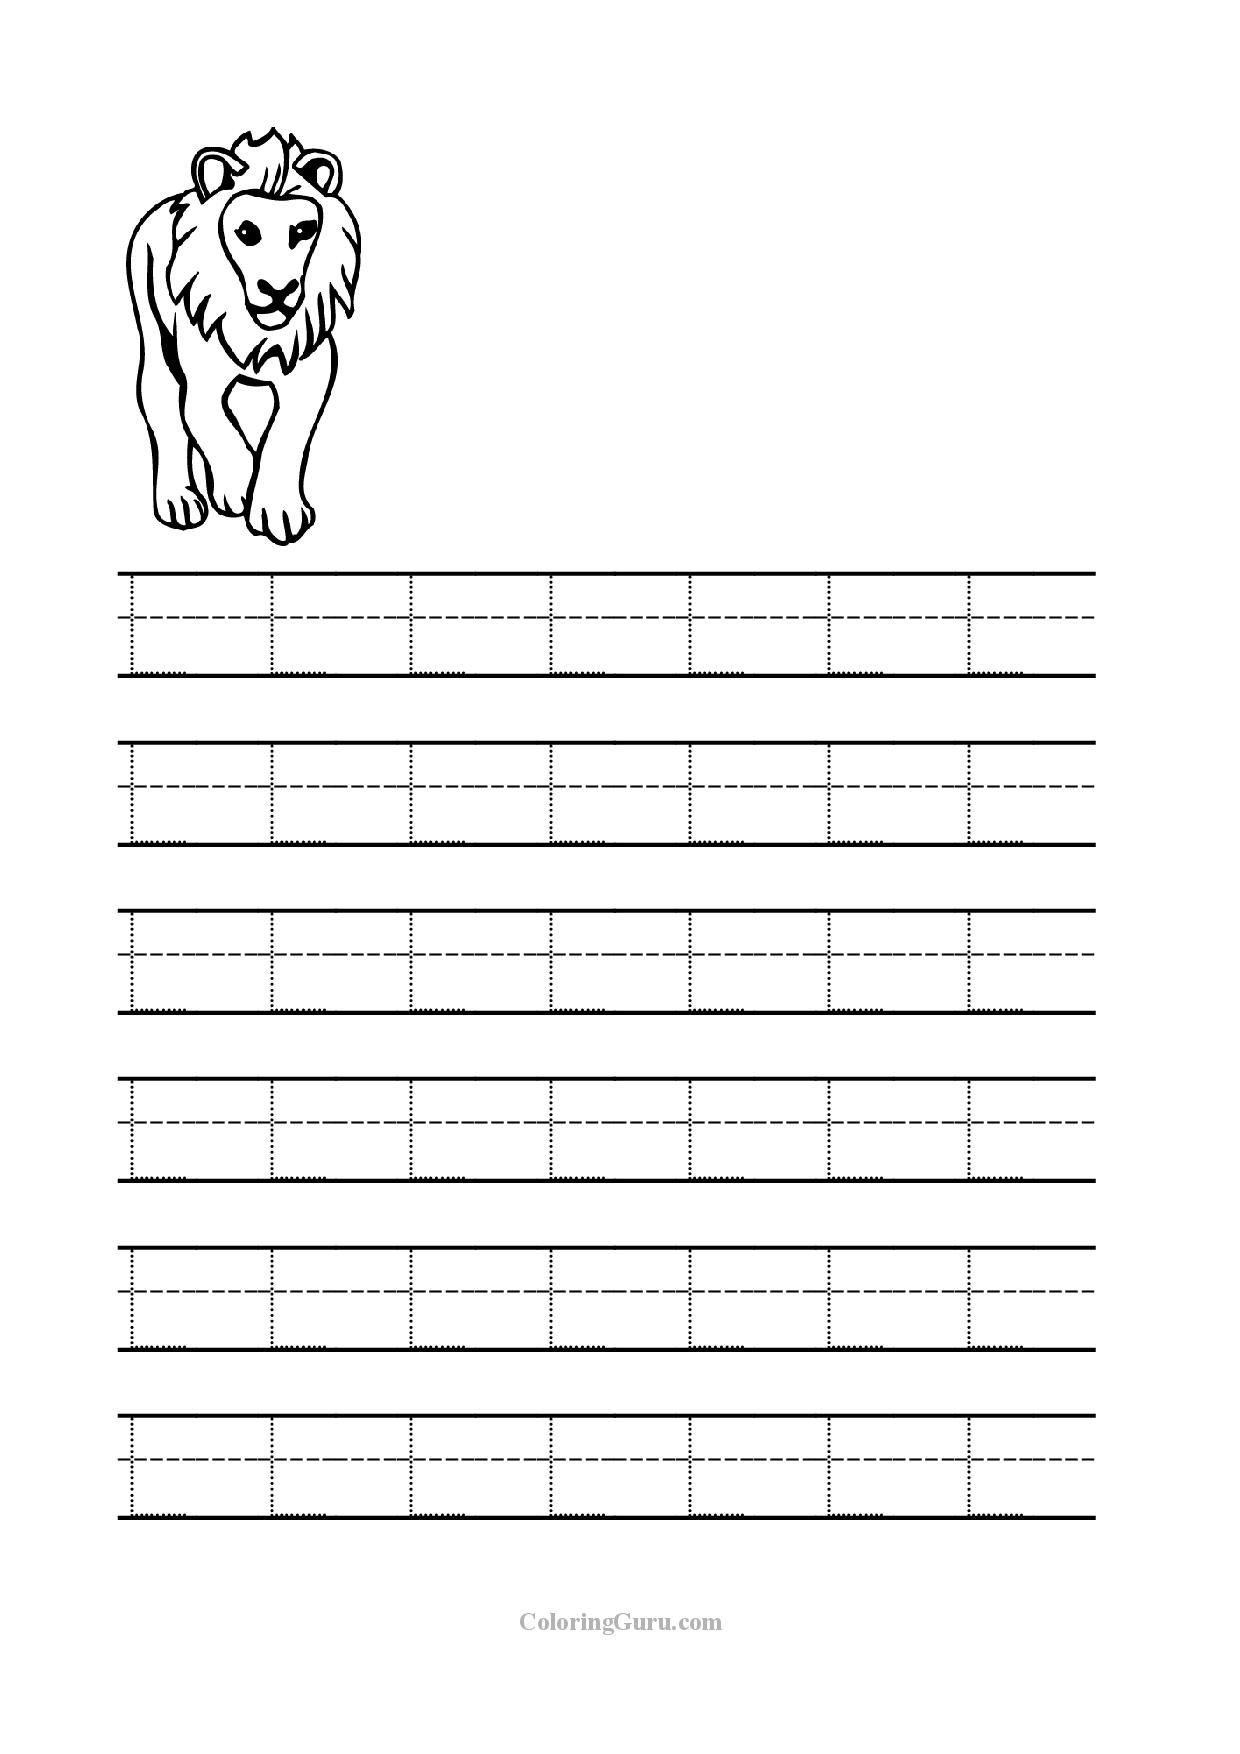 free printable tracing letter l worksheets for preschool inside letter l worksheets free